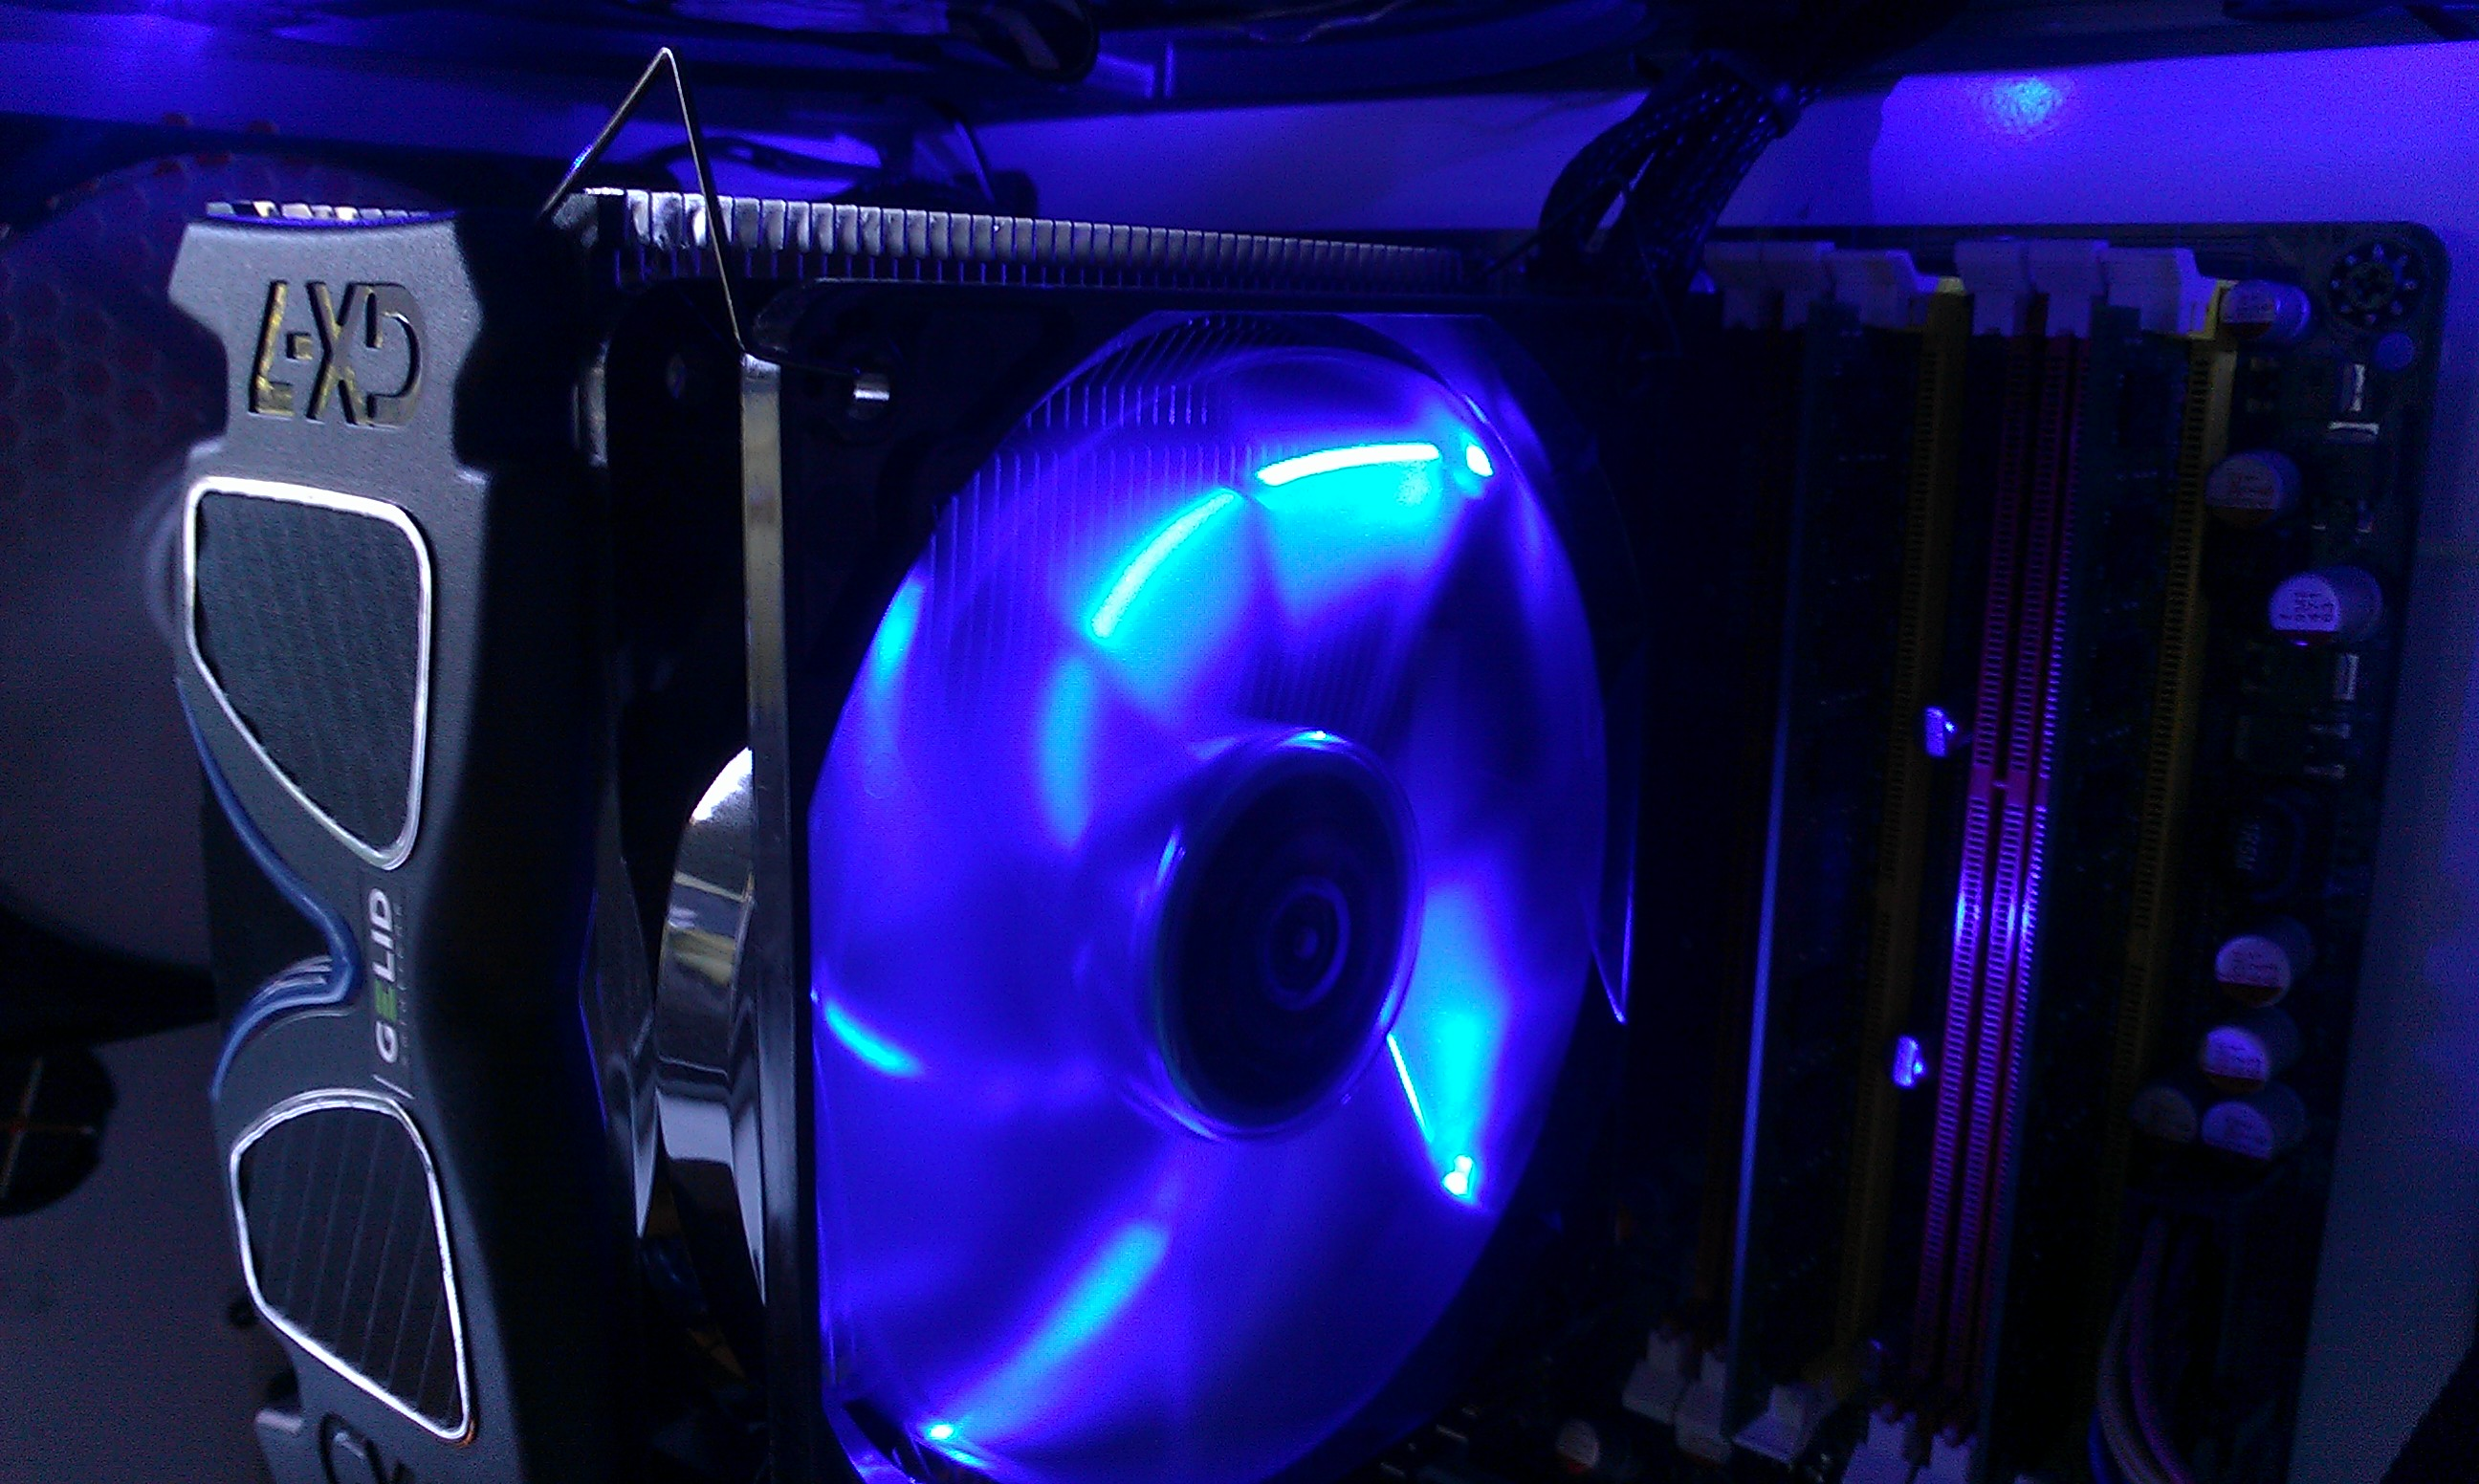 Review – GELID GX-7 CPU Cooler